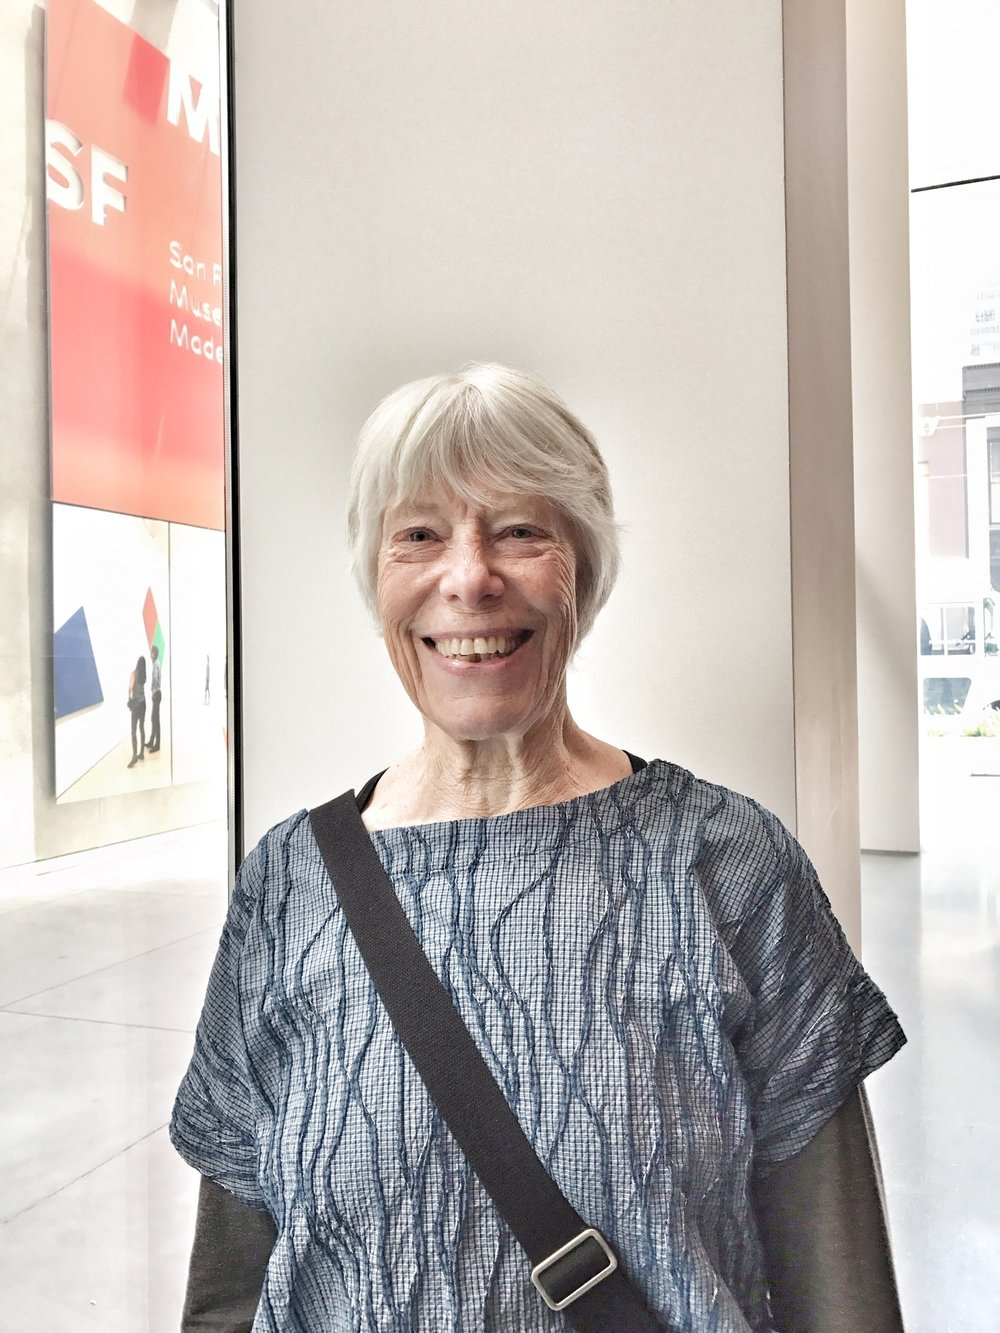 Marj at the SF MOMA on one of her trips to California.